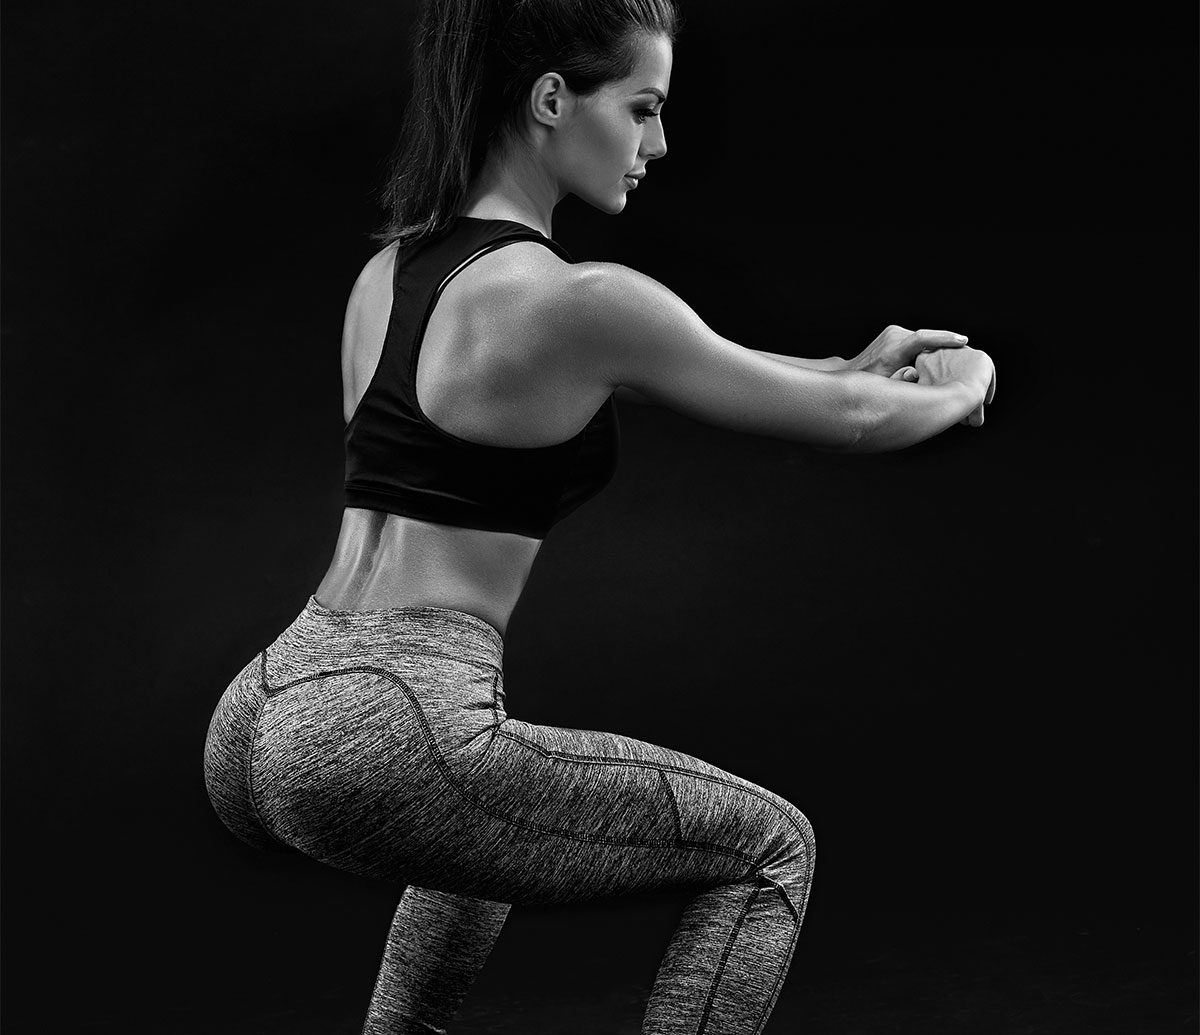 An athlete performing squats, benefitting from Powher suppliments